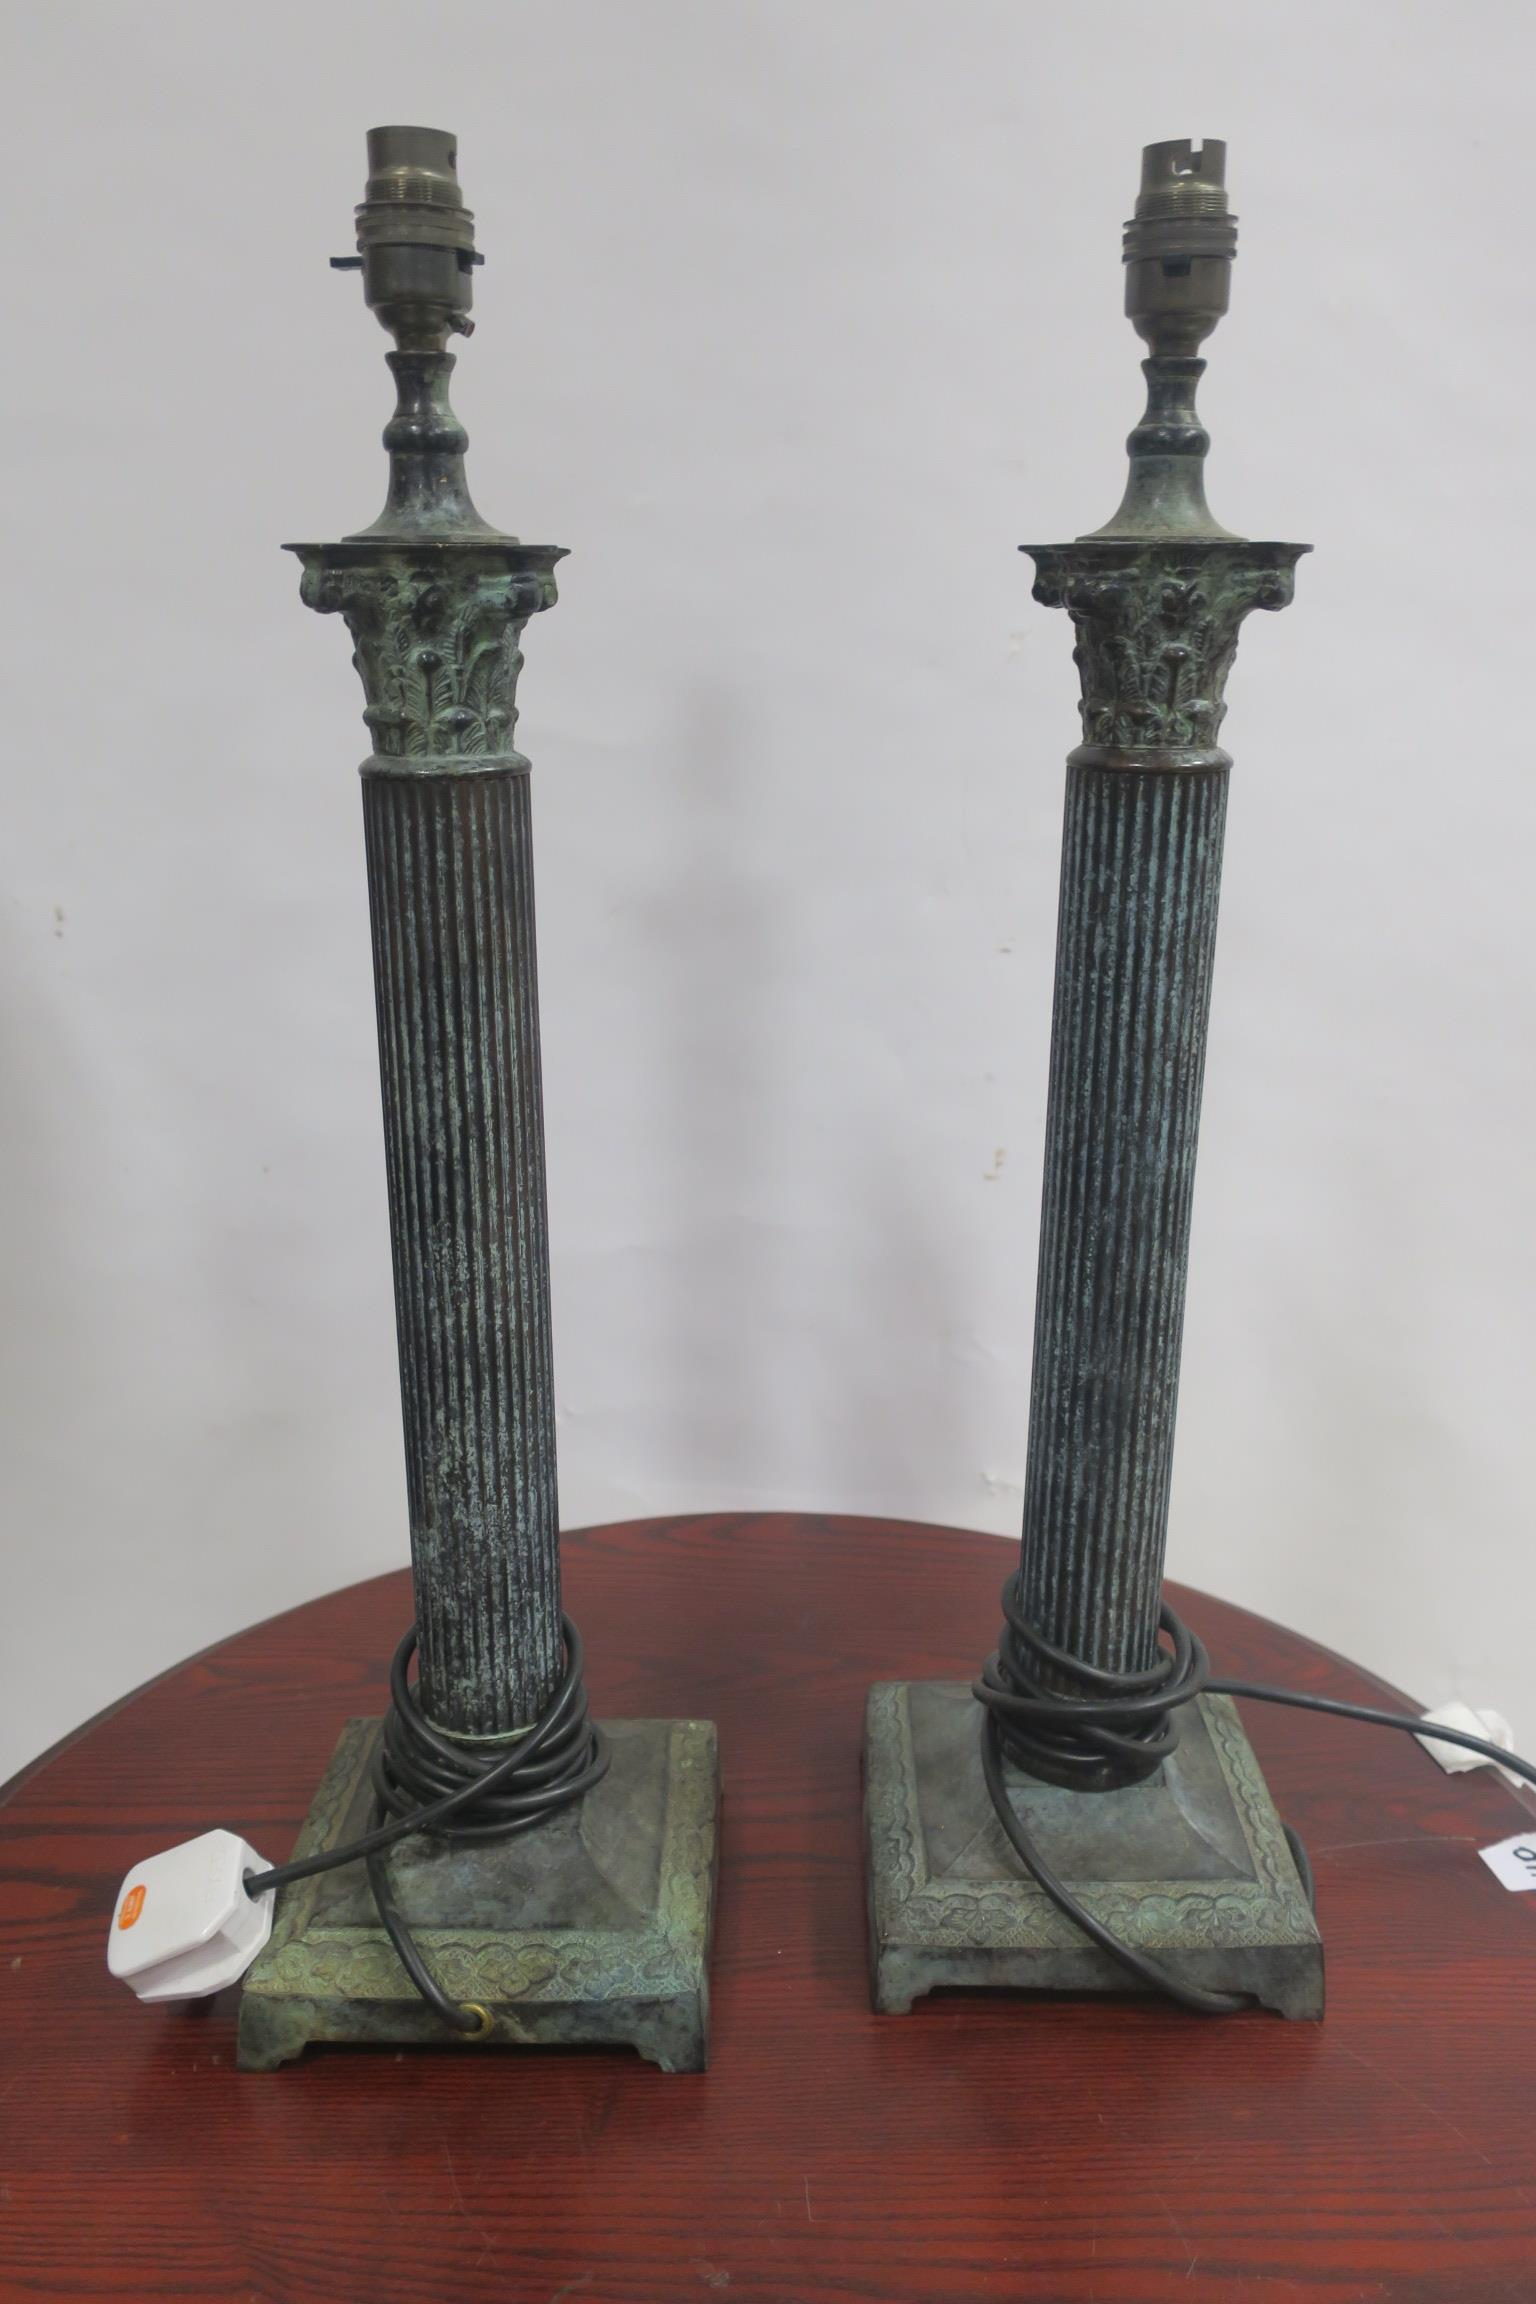 Lot 528 - A PAIR OF BRONZE PATENATED TABLE LAMPS,